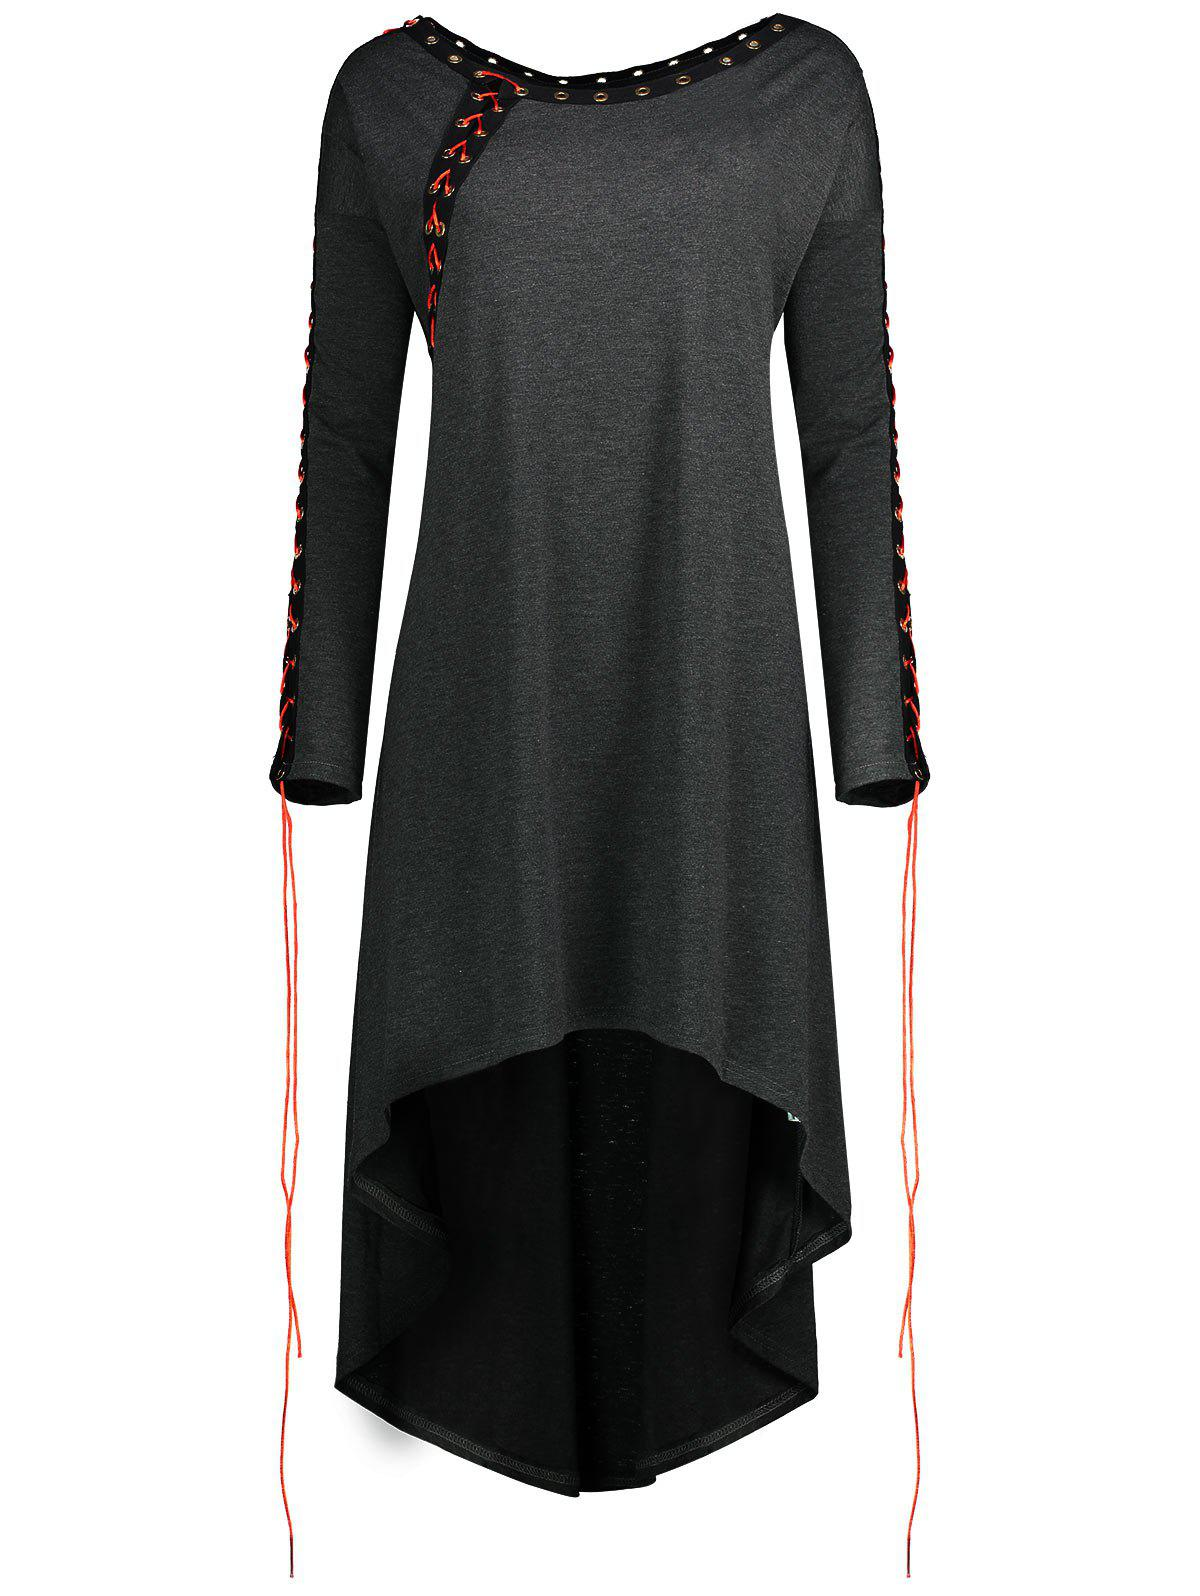 Lace Up Plus Size Asymmetric Tunic Top - DARK GRAY 5XL